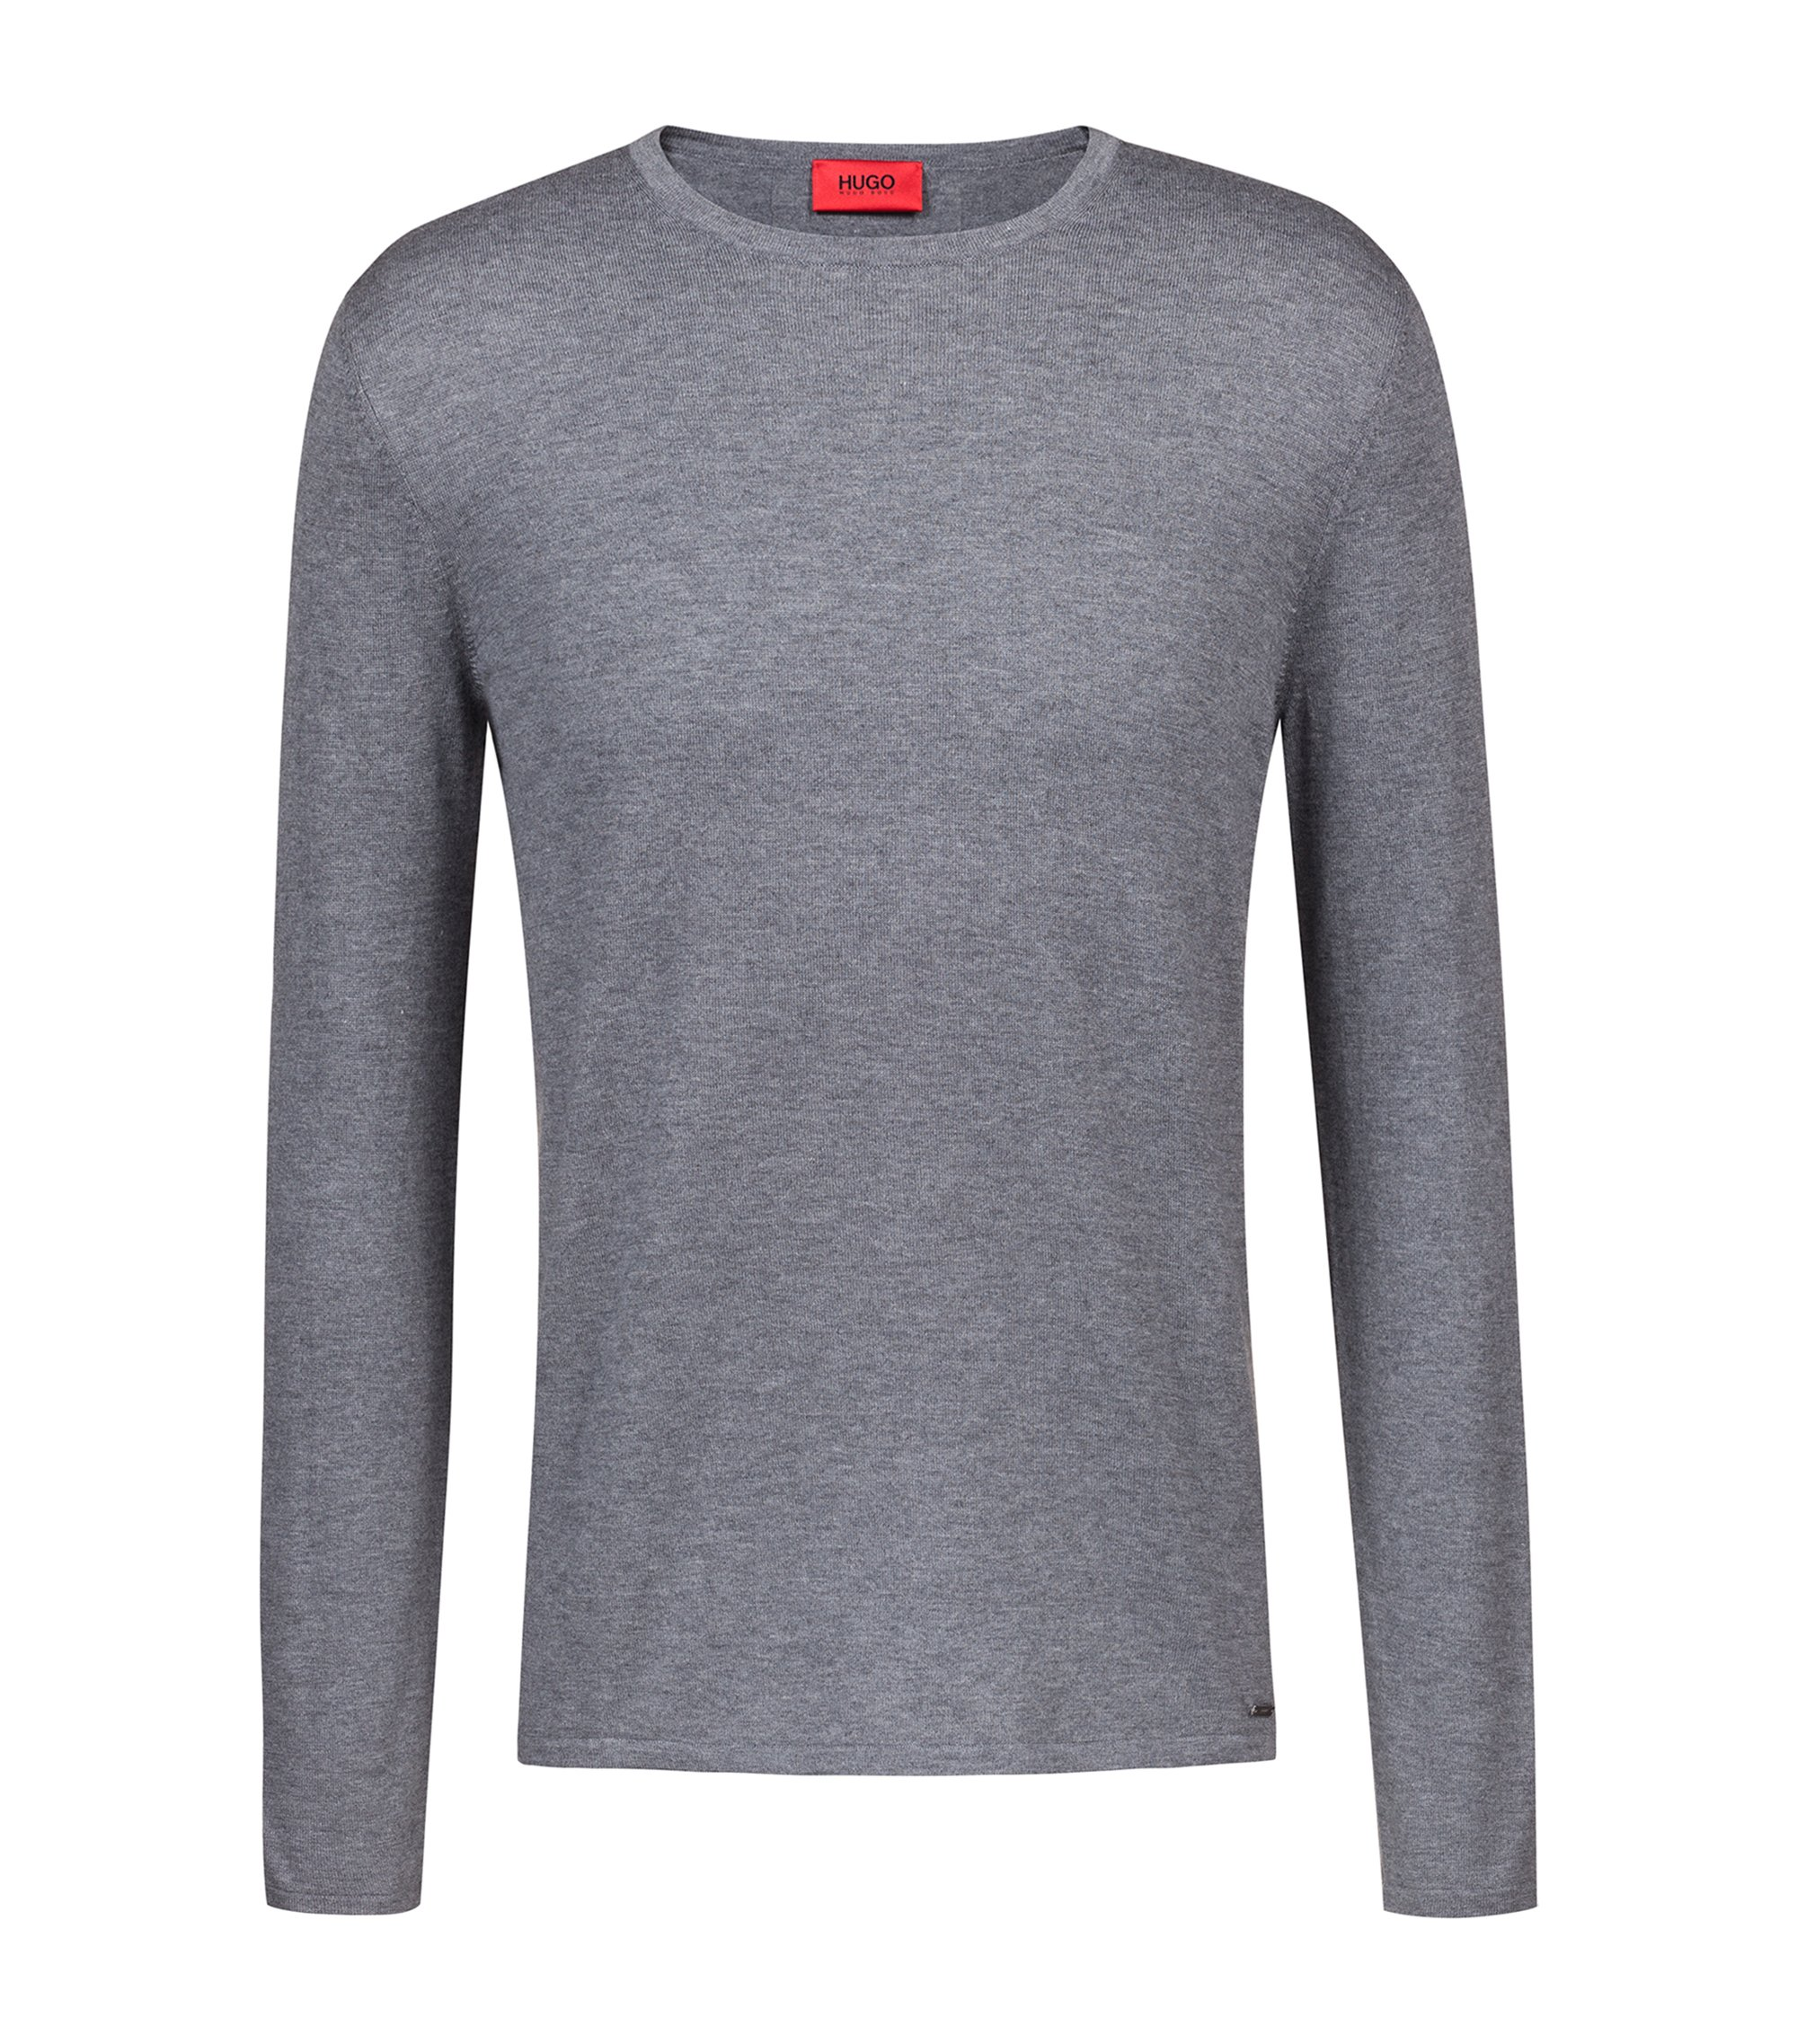 Crew-neck sweater in a cotton blend, Grey